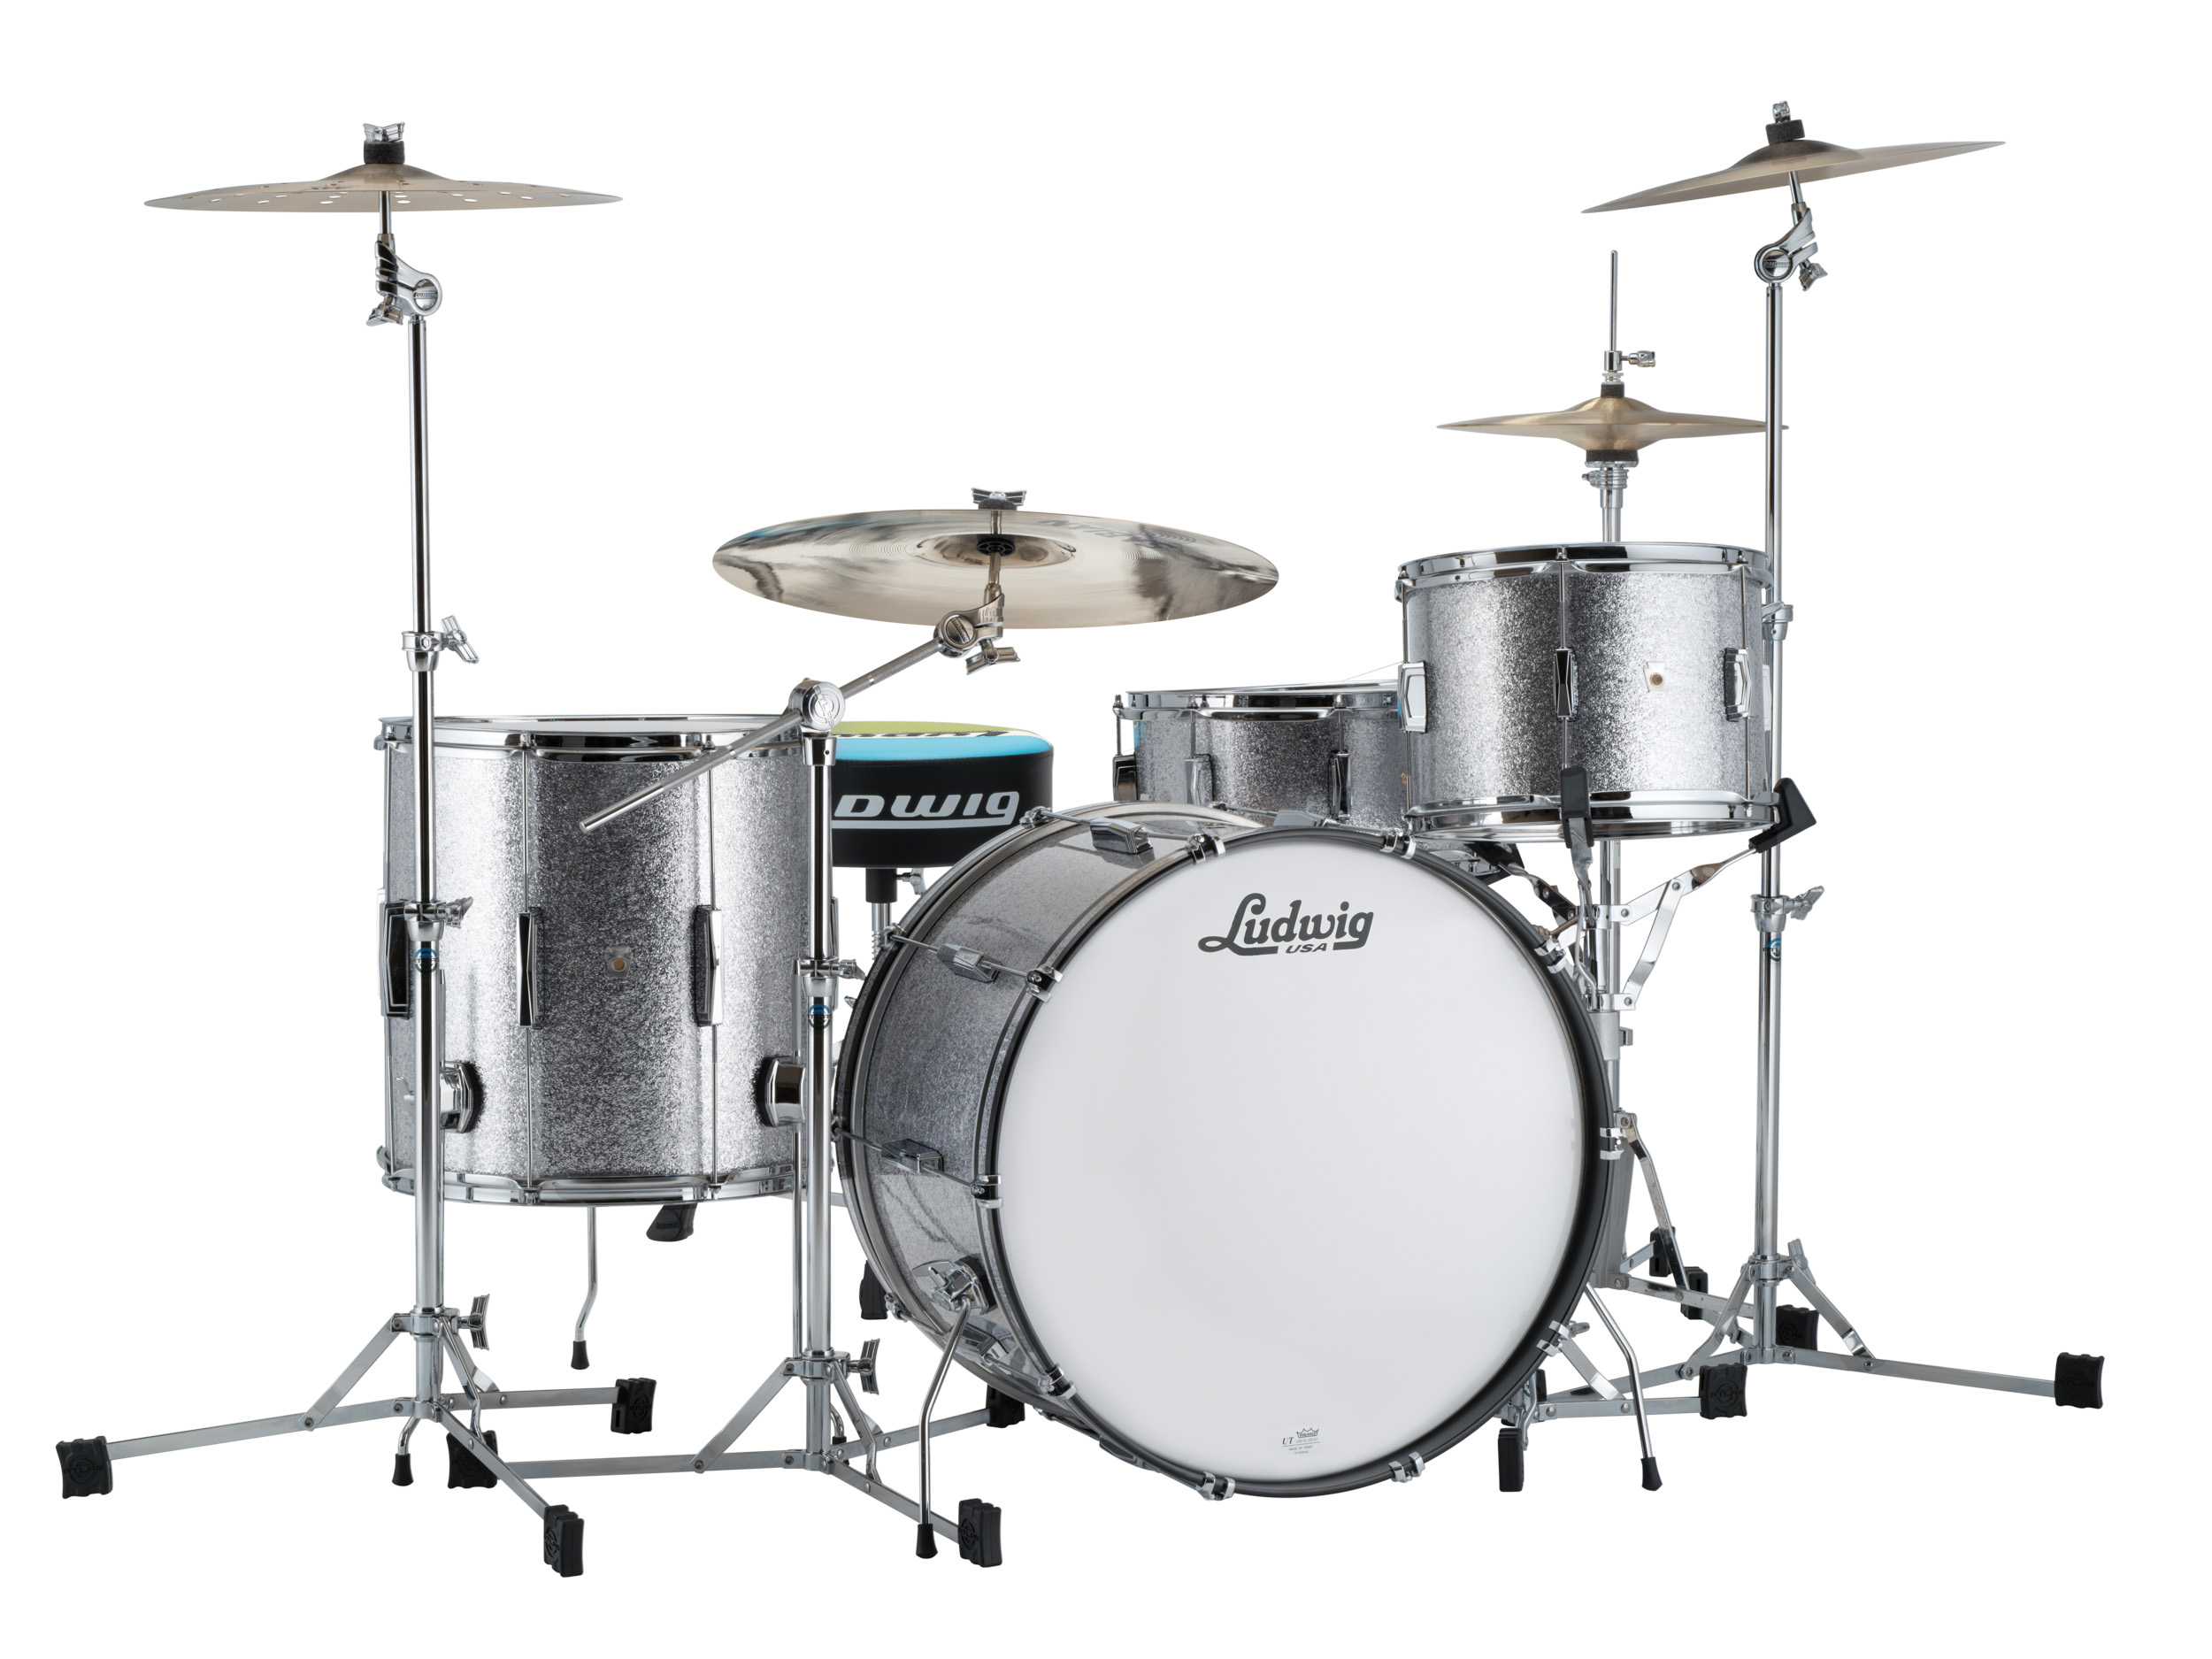 Dating Gretsch drums speciale matchmaking tanks